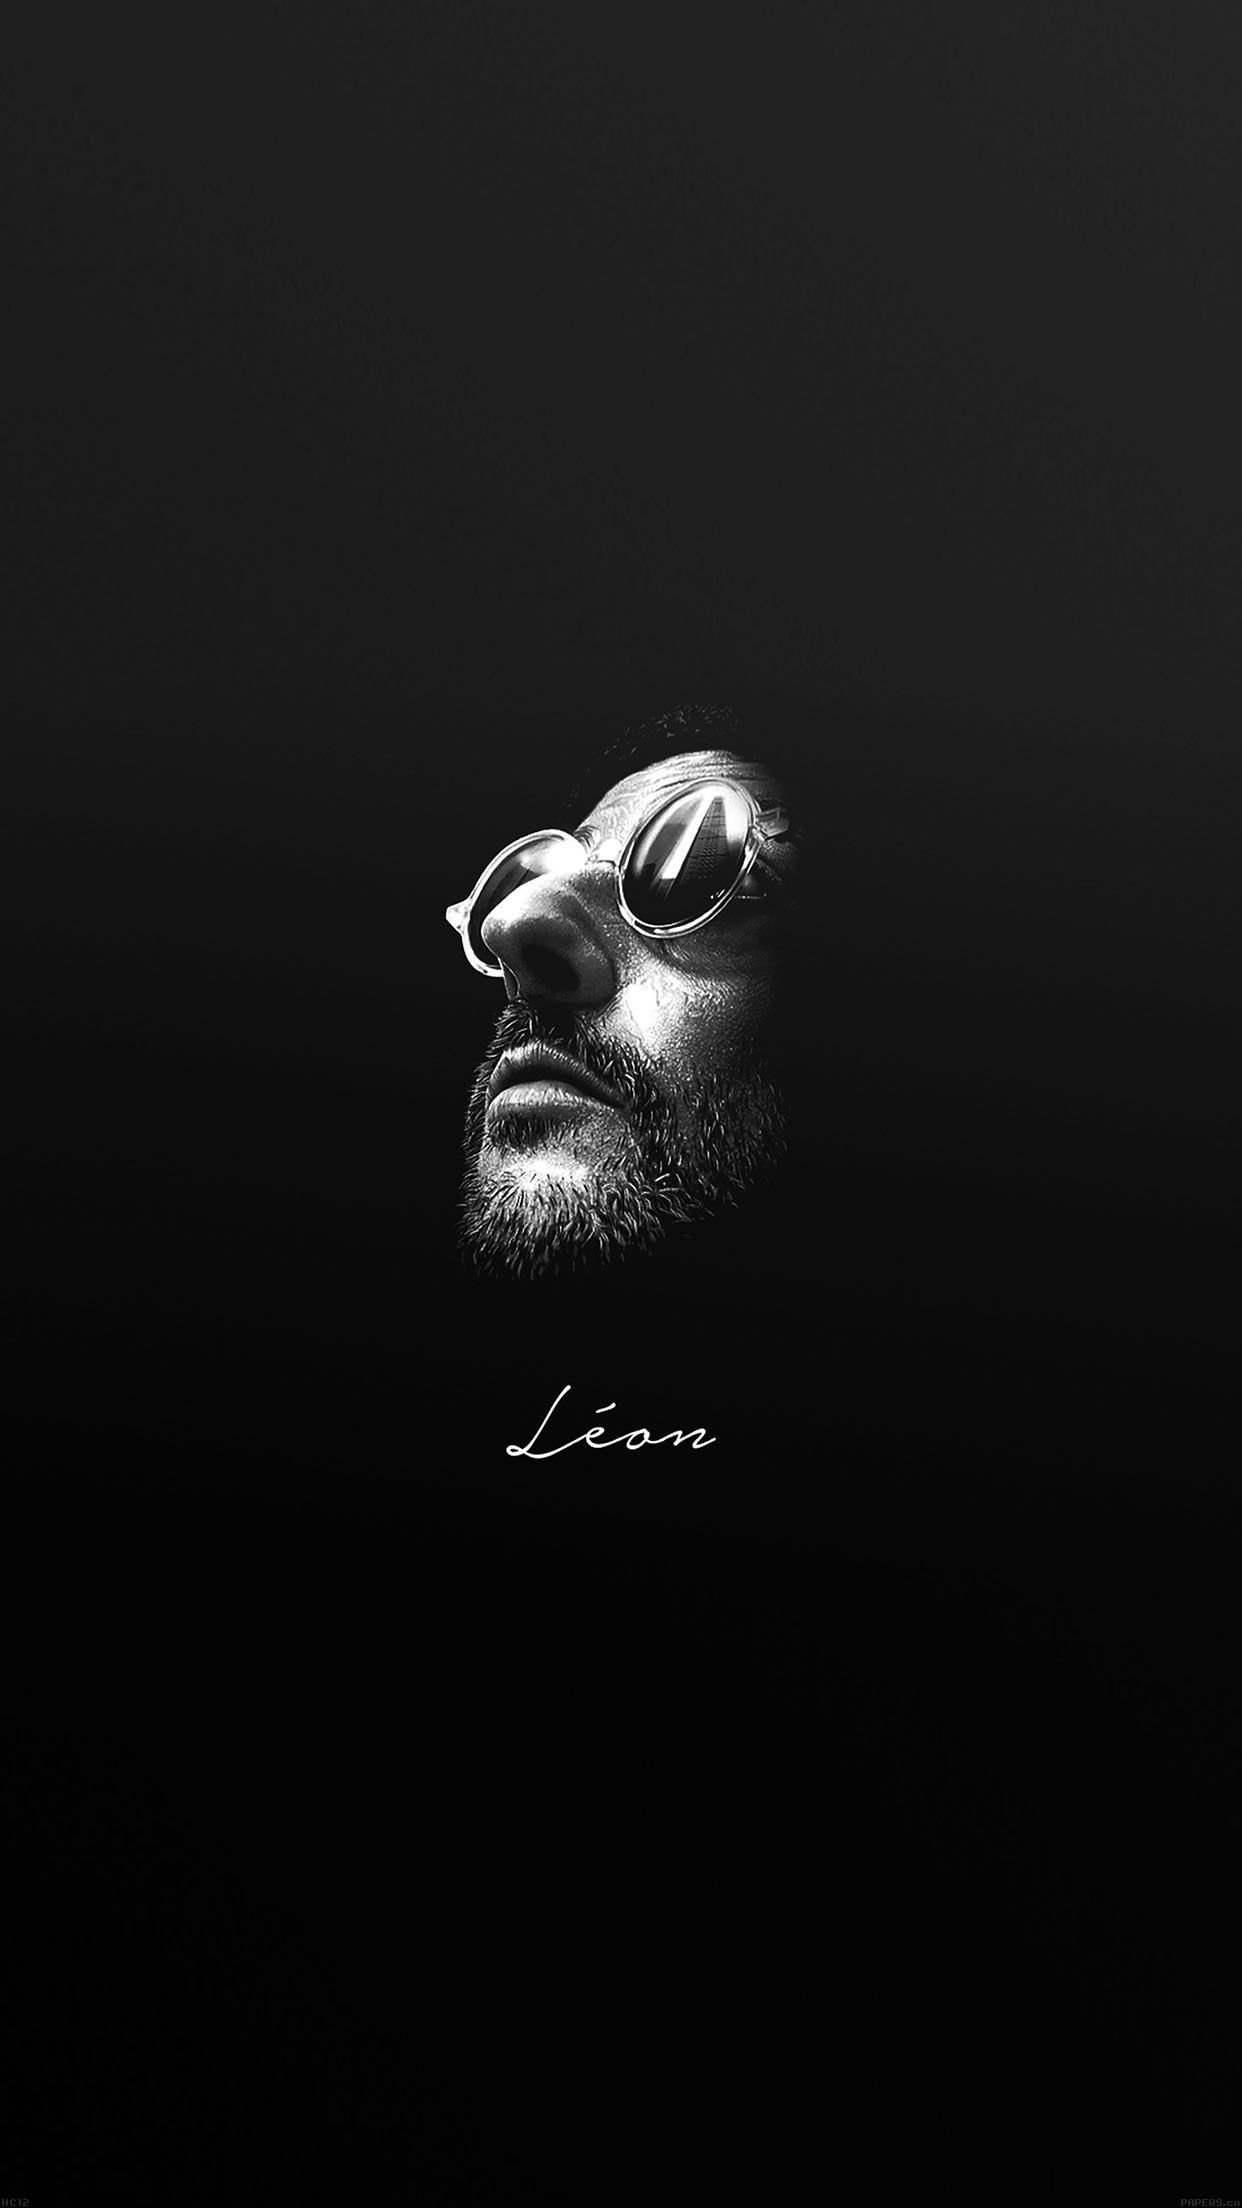 leon face minimal simple art iphone 6 plus wallpapers